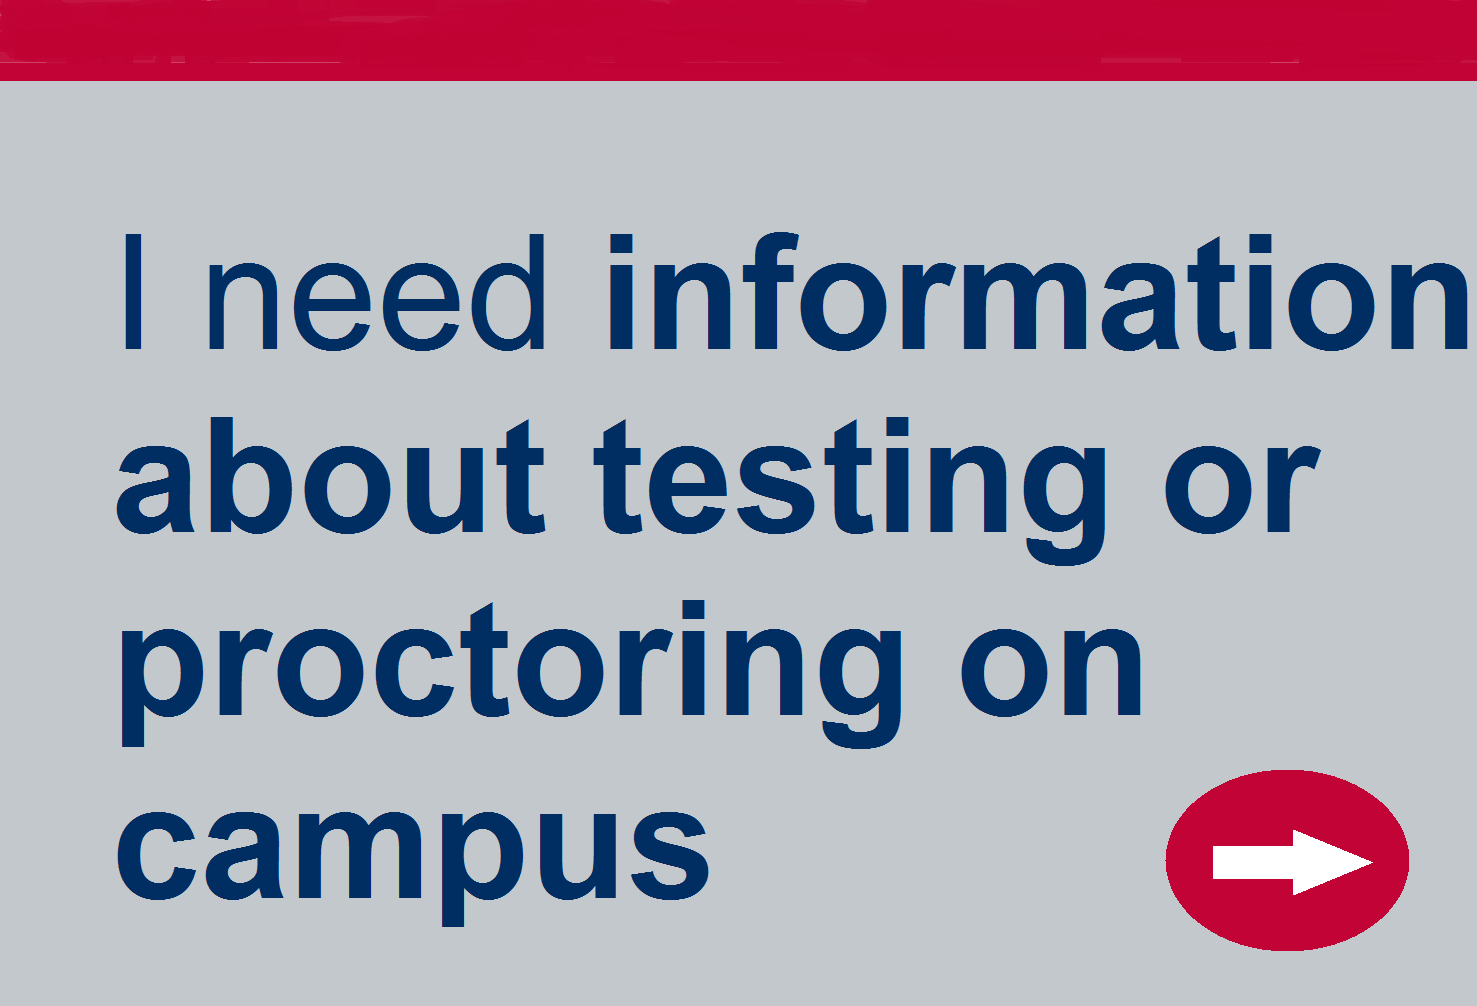 Need information about testing or proctoring on campus